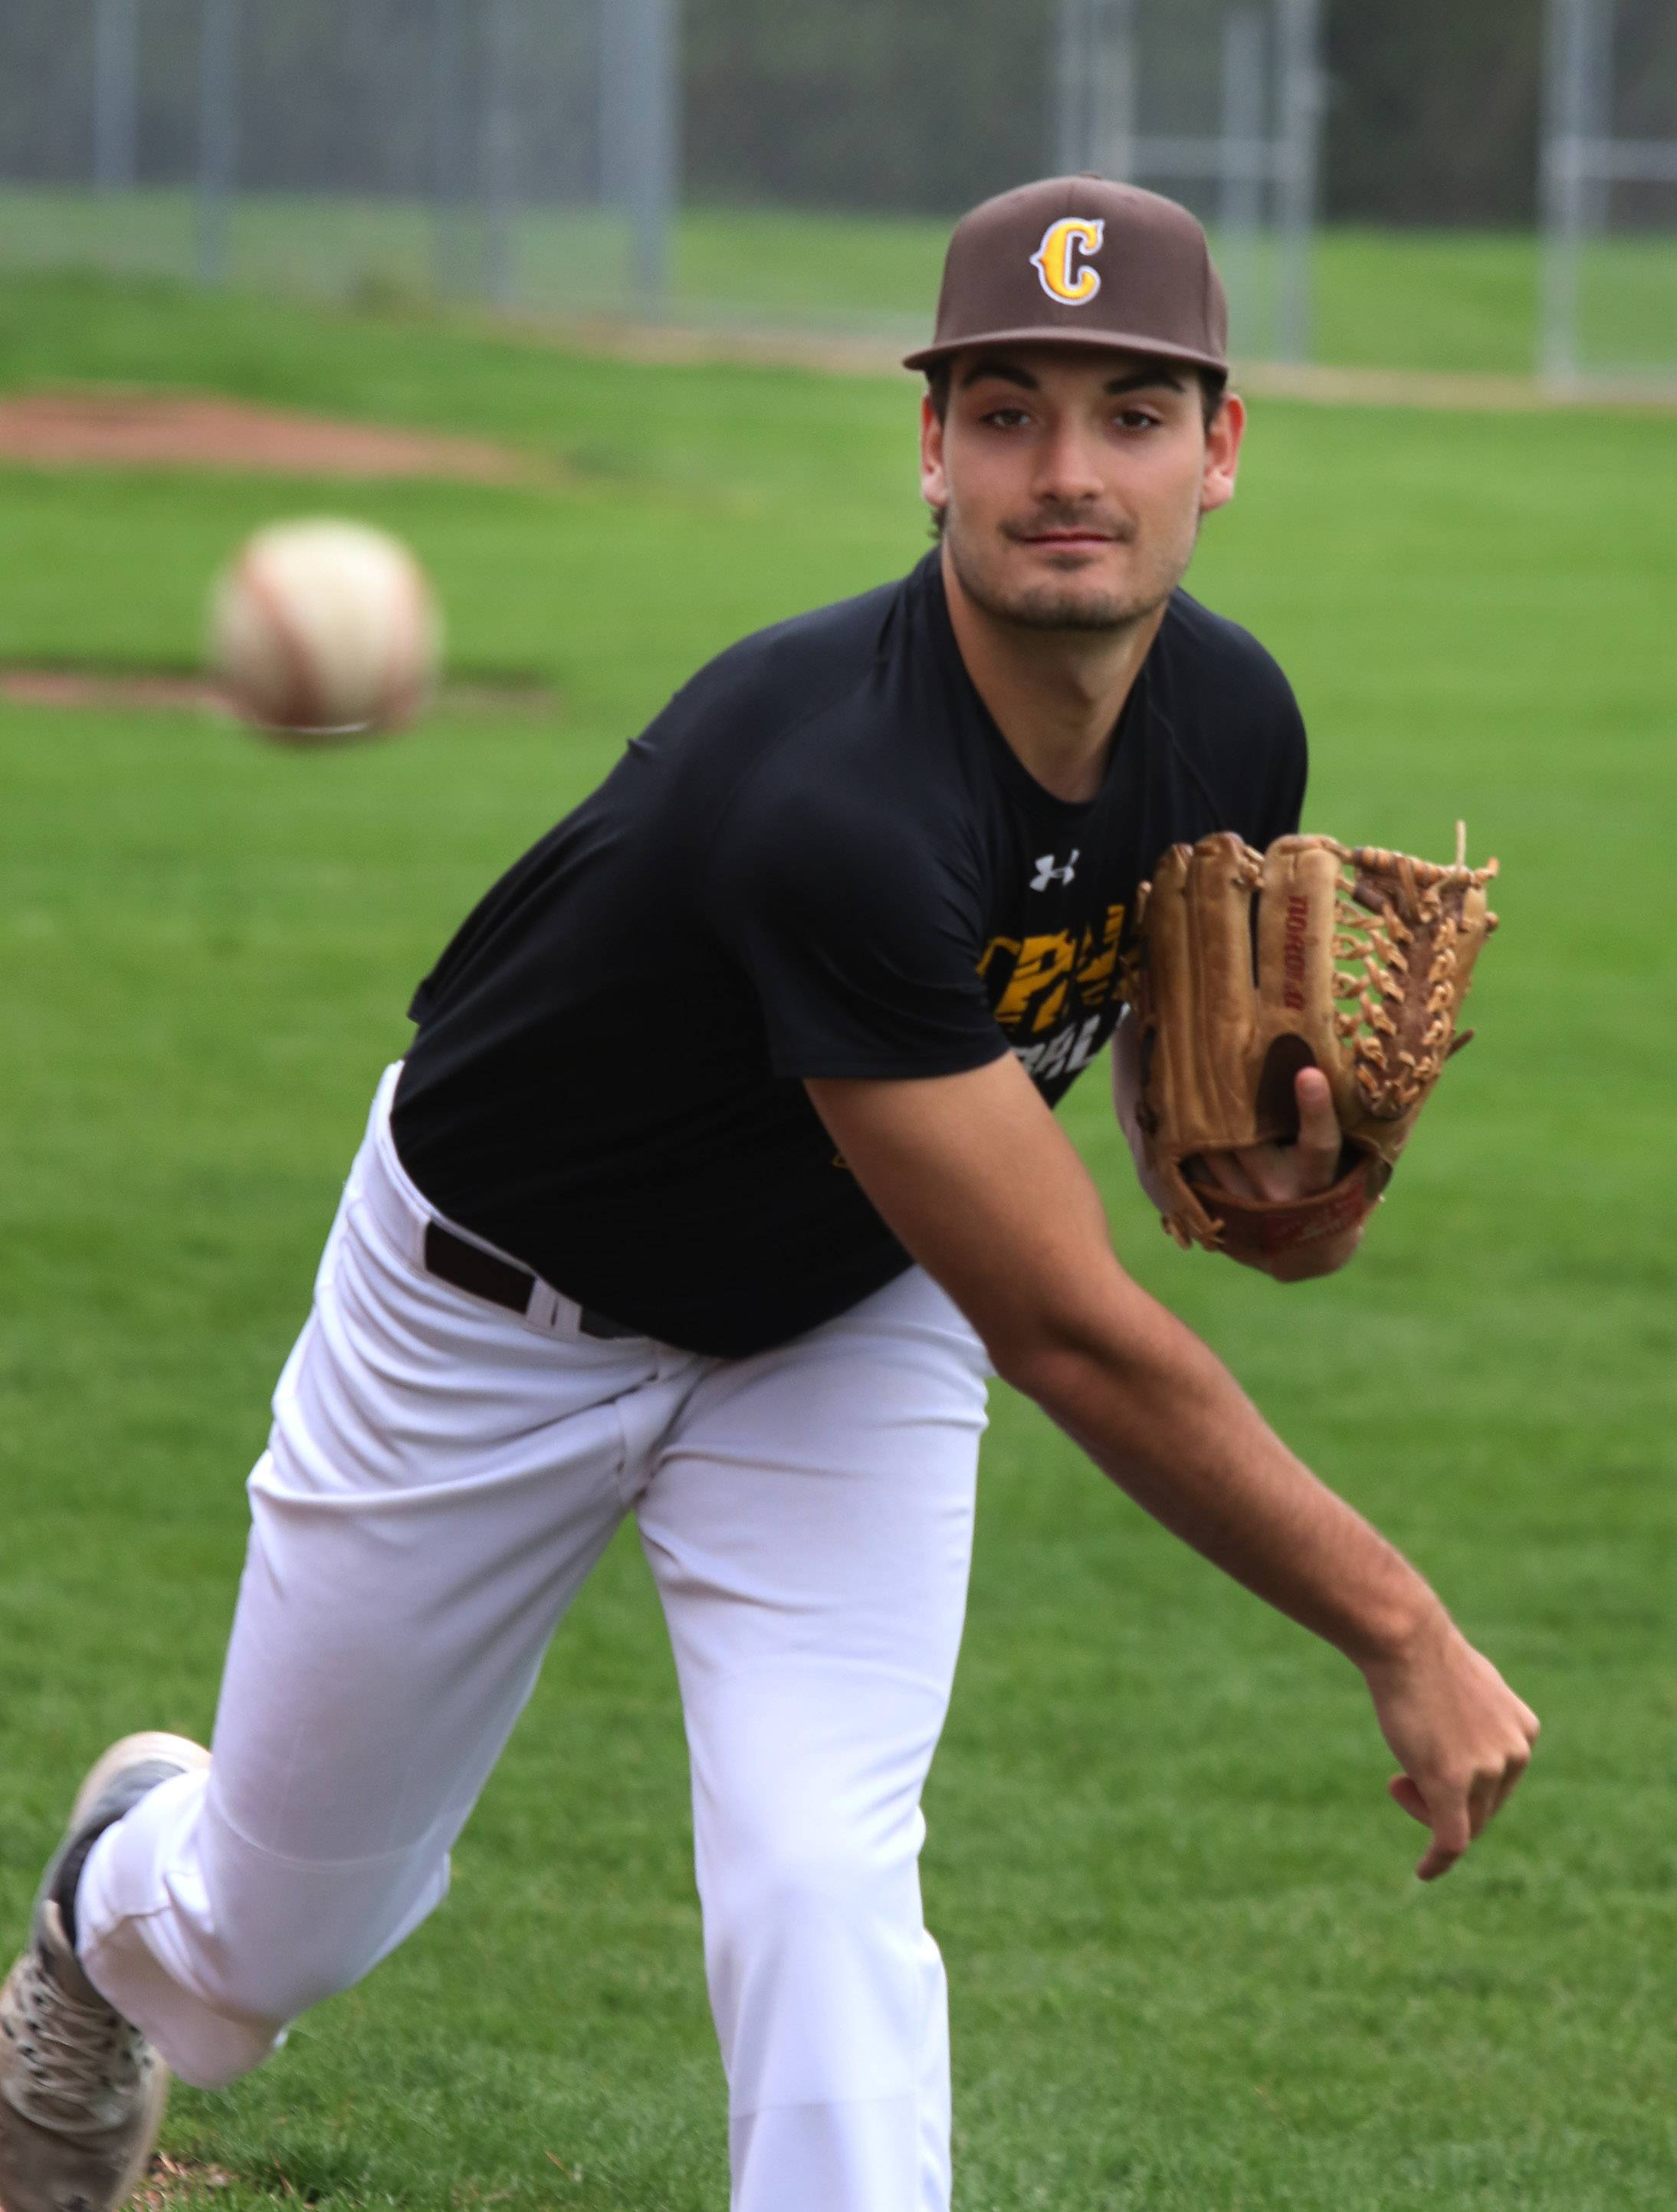 Carmel Catholic's Eddie Pietschmann overcame a pair of shoulder surgeries and is having a standout spring season on the pitching mound.